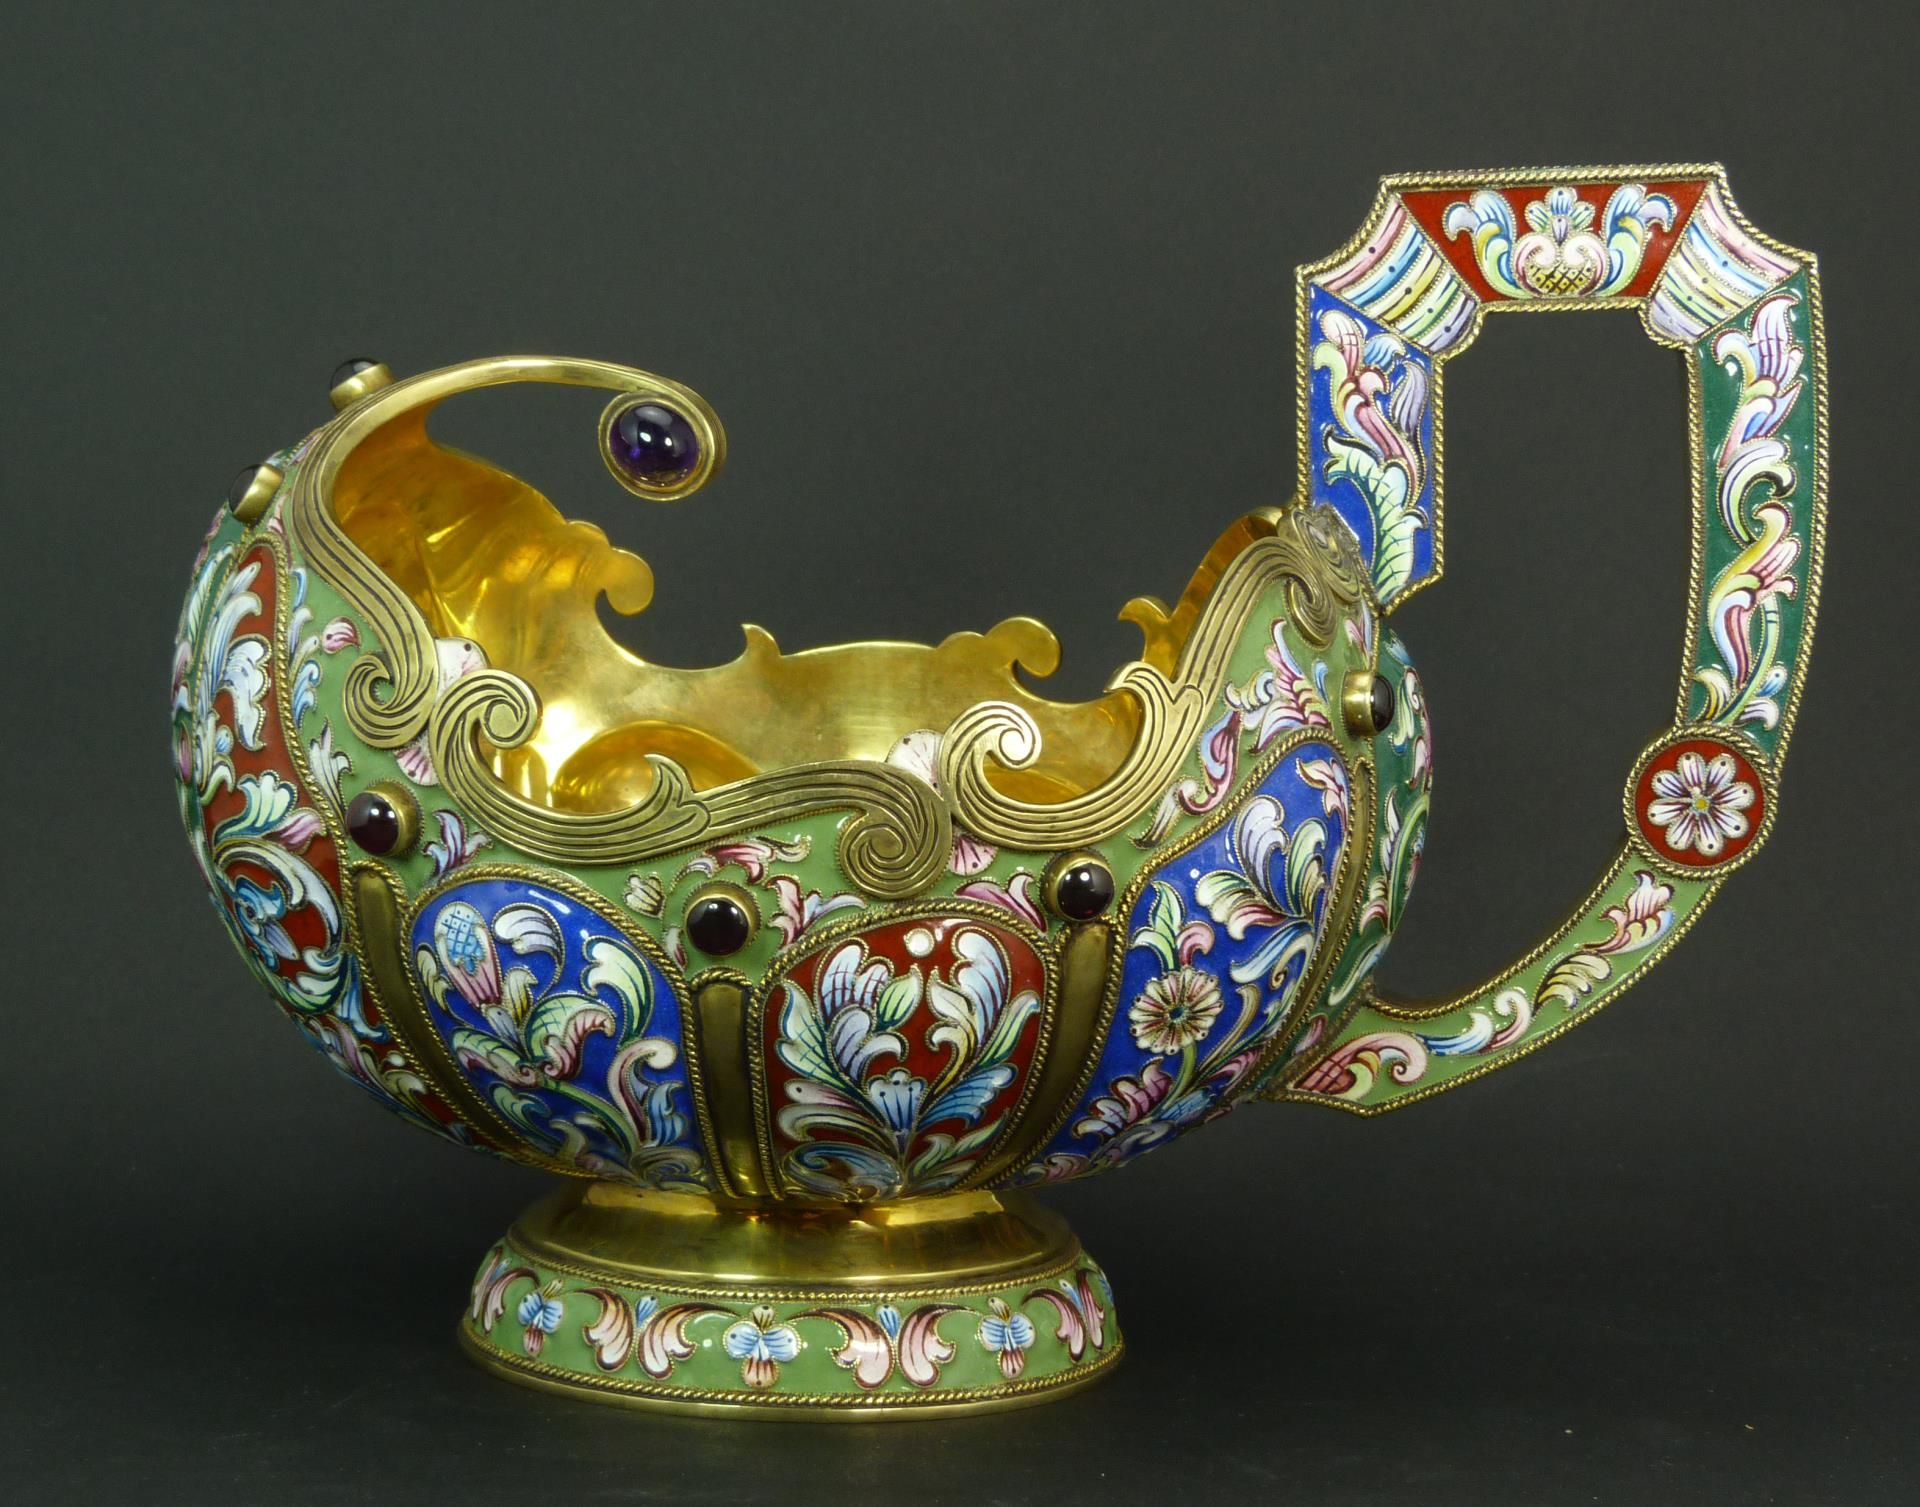 A large and interesting Russian enameled silver Kvosh. Jeweled throughout with 13 round cabochon rubies. Vibrant multicolor scrolled floral designs over red, green and blue grounds. Gold wash throughout. Bottom holds impressed 88 silver marks with town marks. Also holds Faberge Cyrillic town marks.